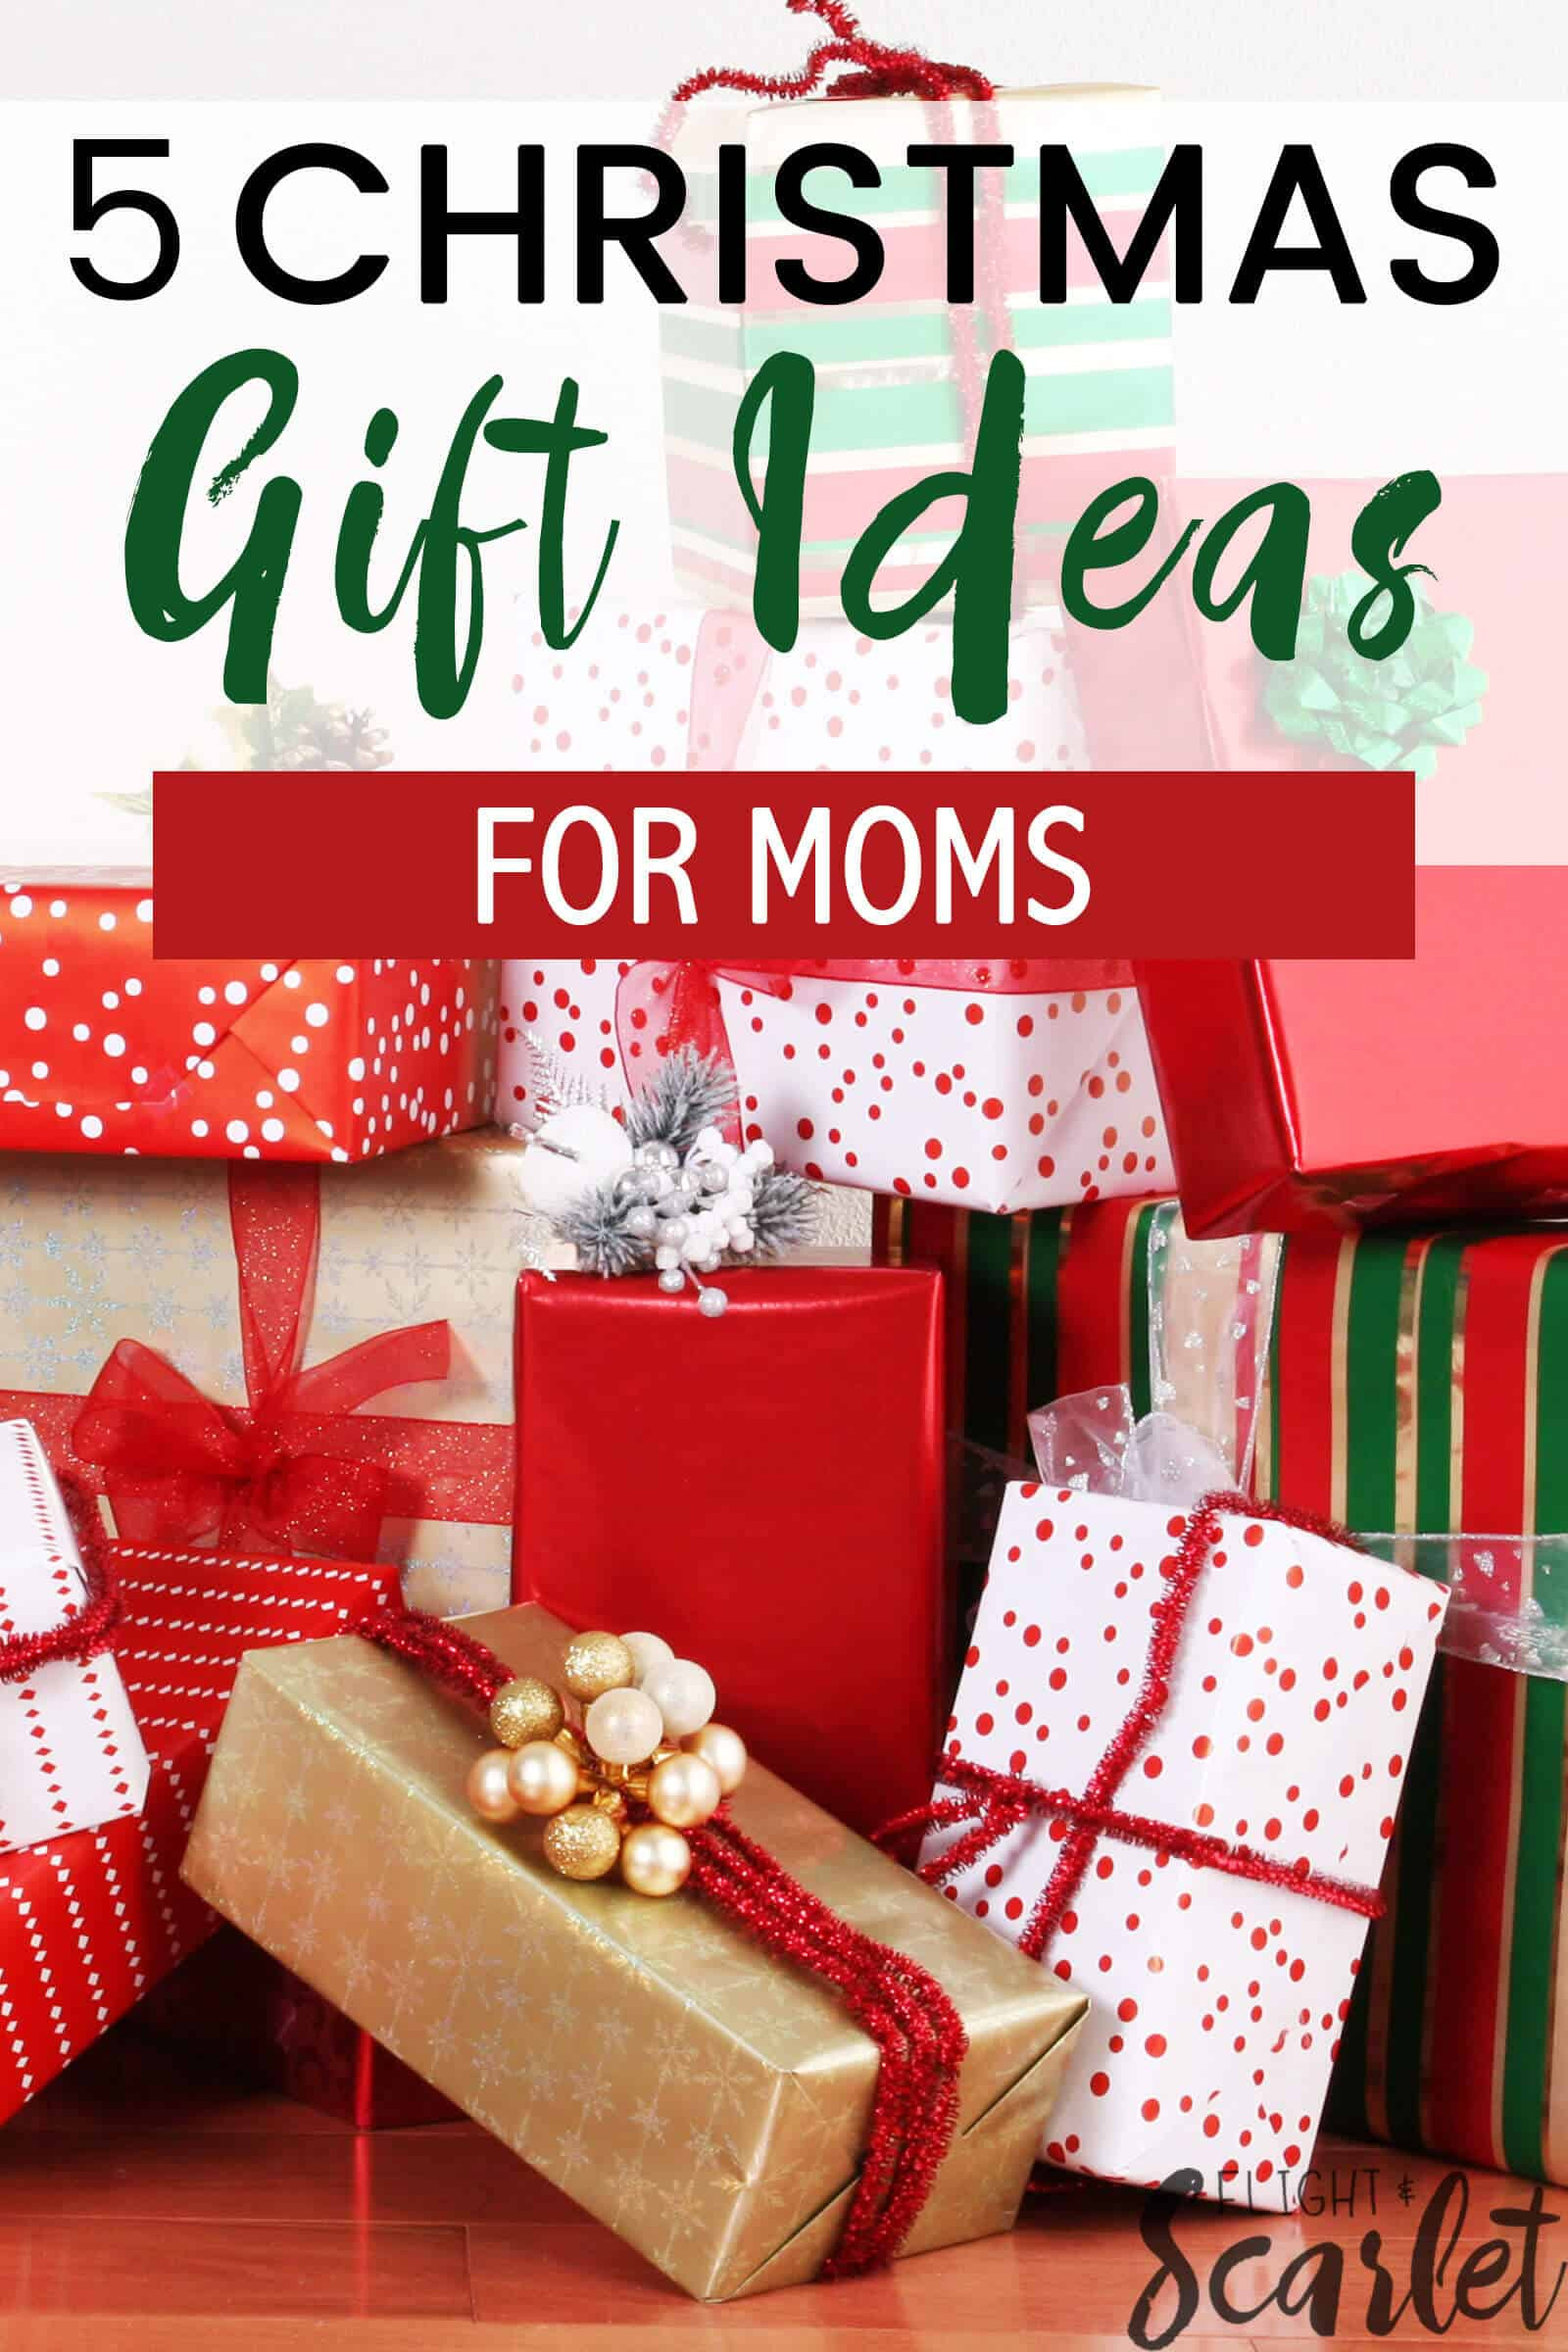 Holiday Gift Ideas For Mom  5 Bud Friendly Gift Ideas For Moms Flight & Scarlet